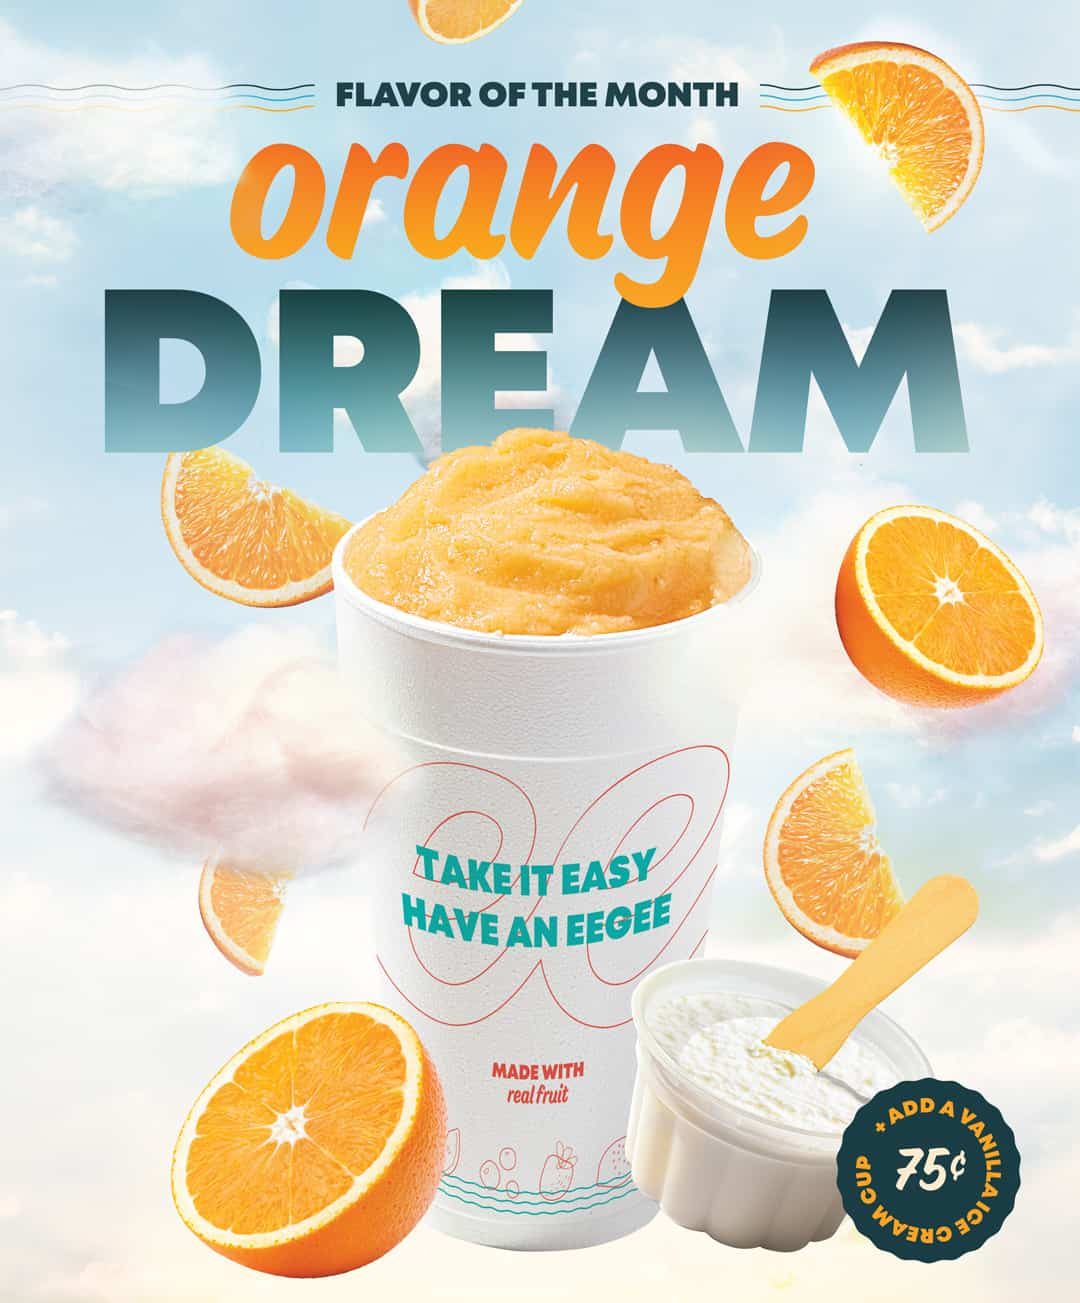 Monthly Restaurant Marketing & Advertising - Orange Dream eegee